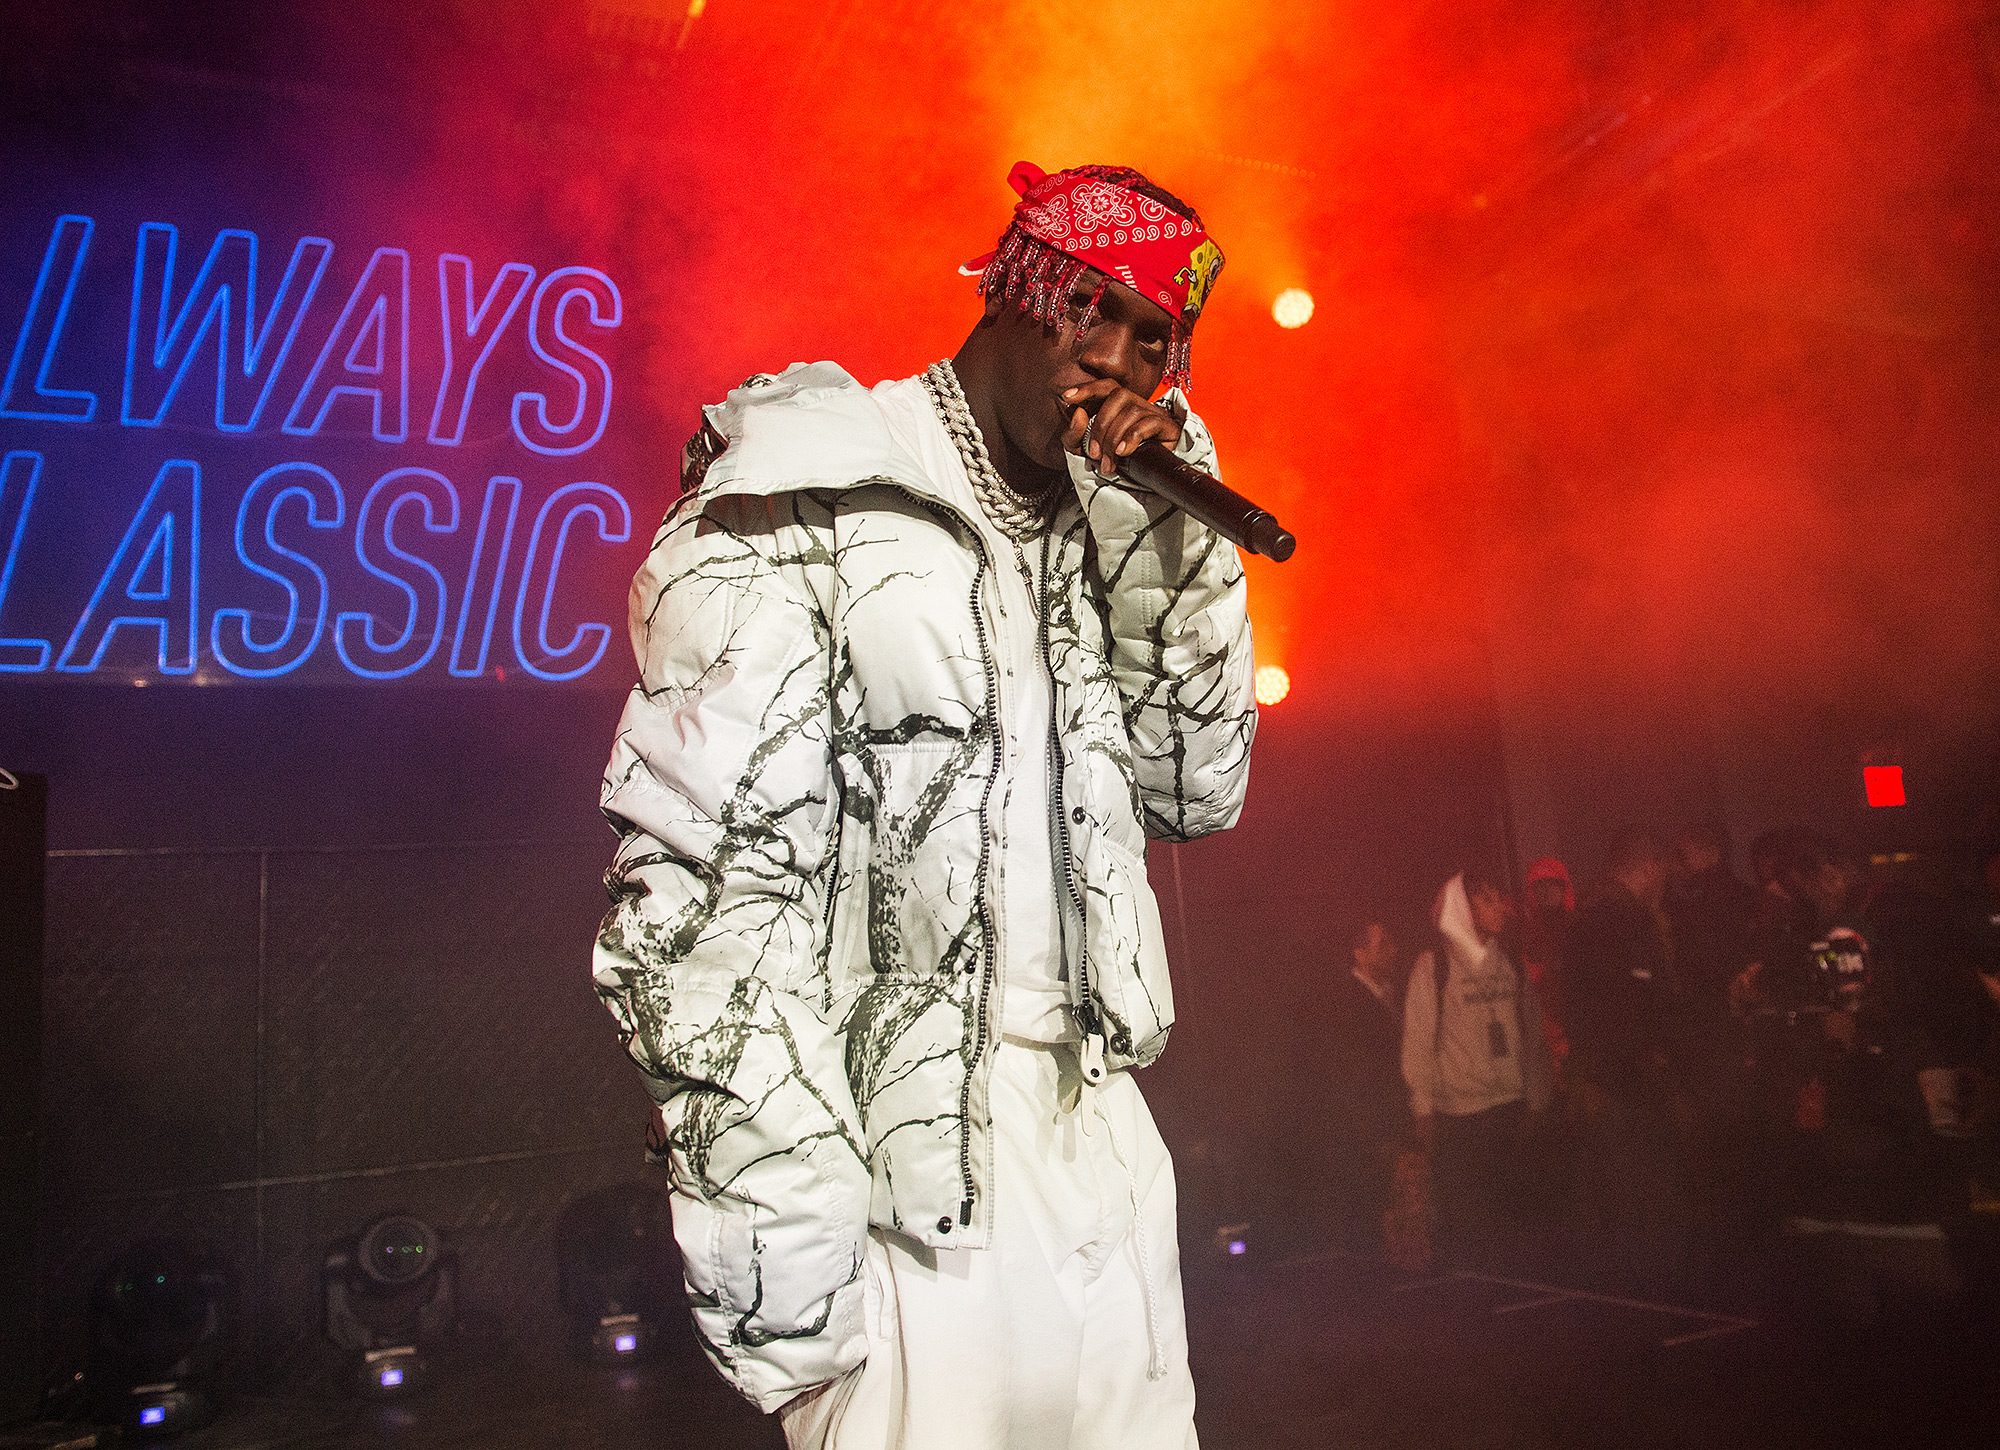 1 Night With Lil Yachty And The Sailing Team